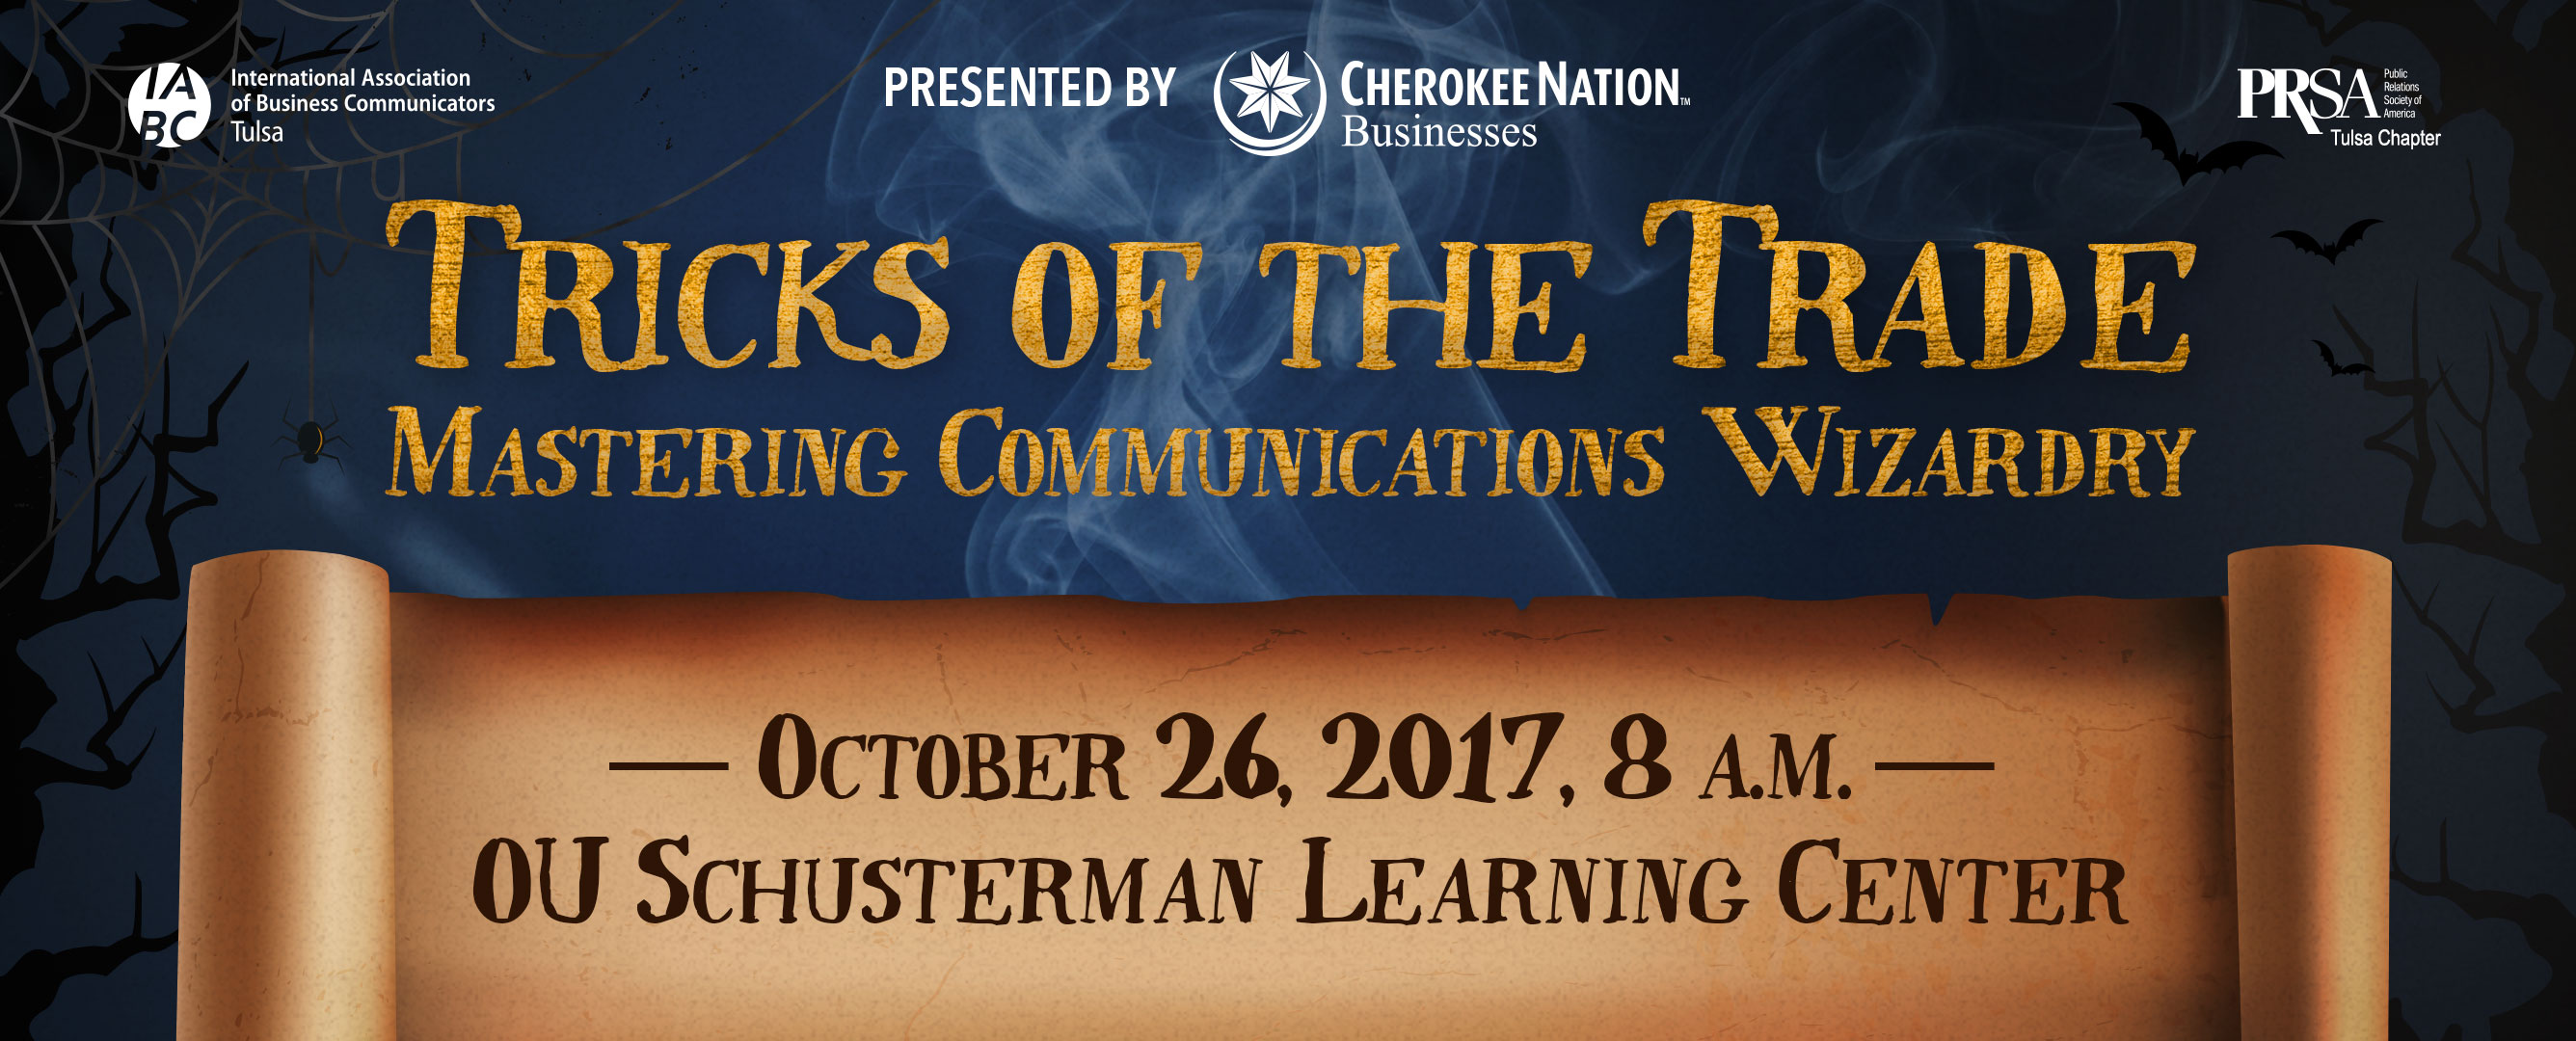 2017 Communicators Summit: Tricks of the Trade – Mastering Communications Wizardry